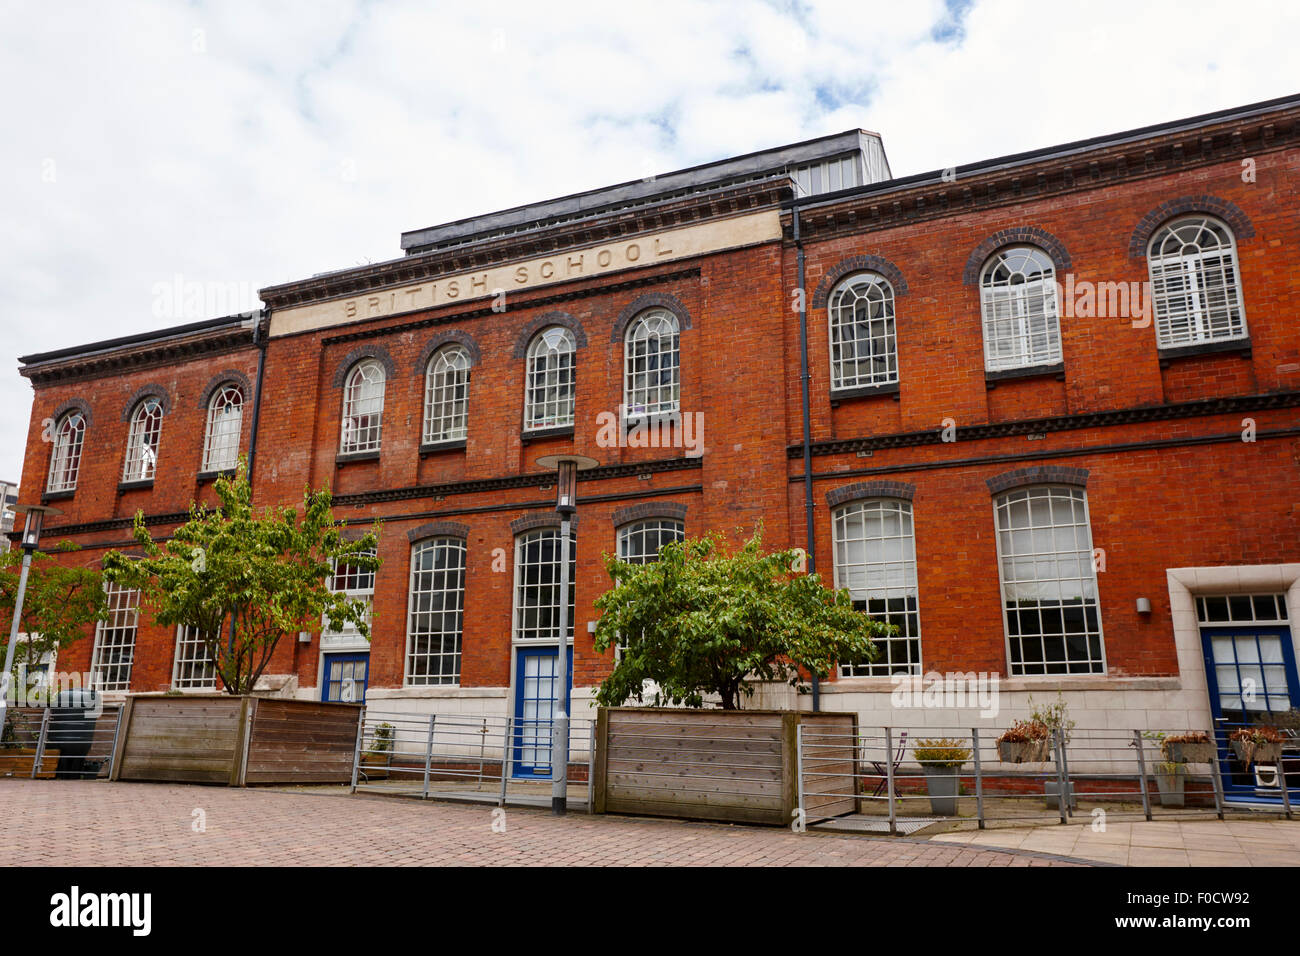 scholars gate apartment complex formerly the british school building Birmingham UK - Stock Image